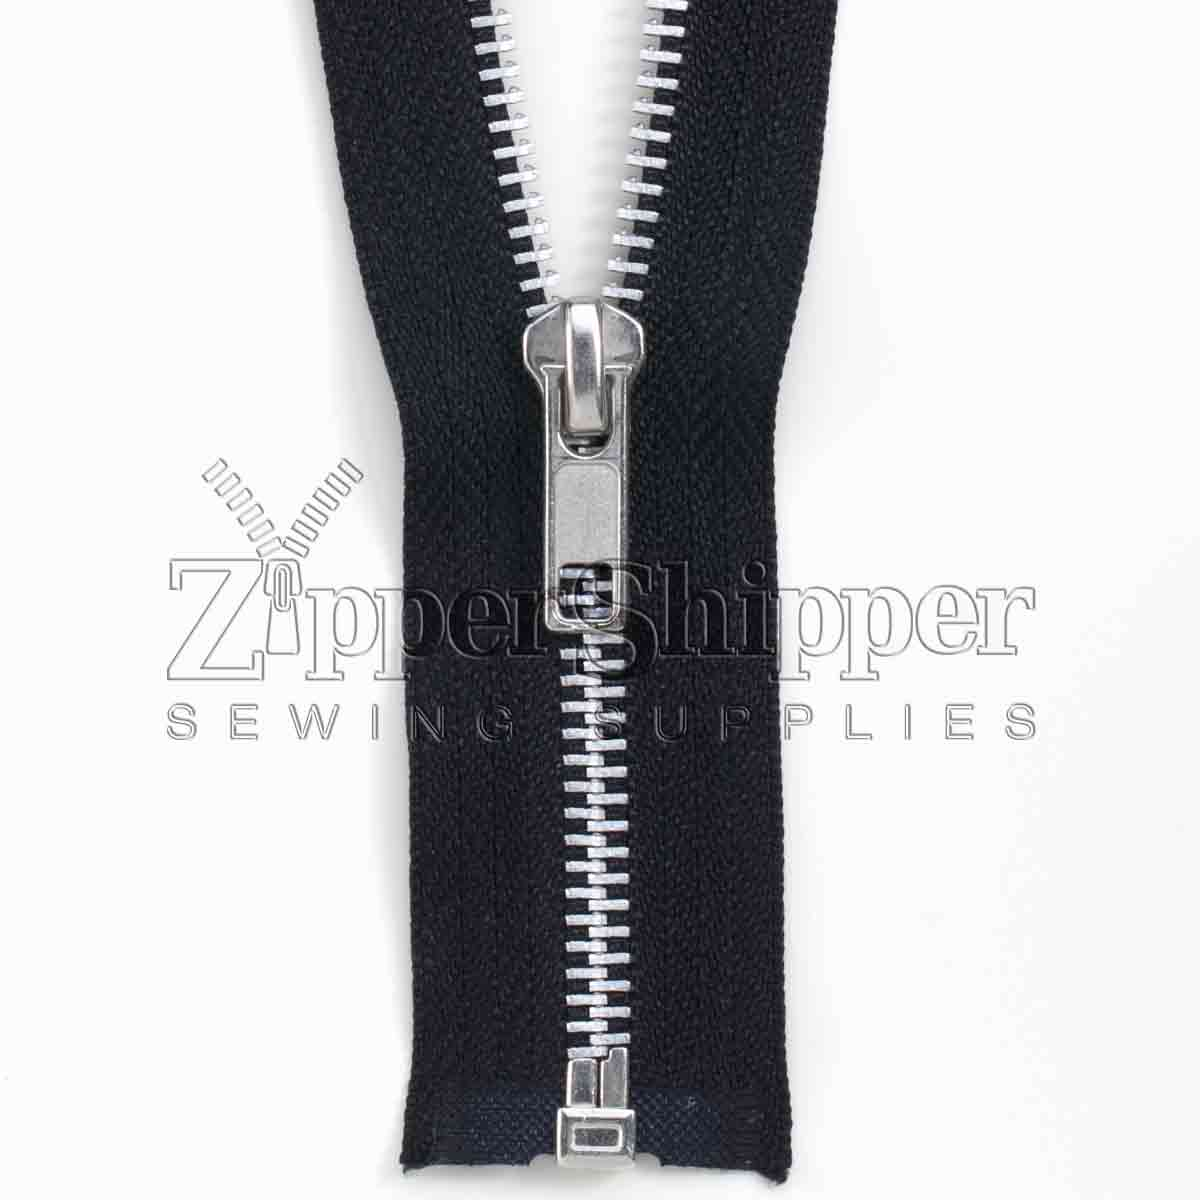 Inch Zippers Foot Zippers Zippers Of Every Length For Sale